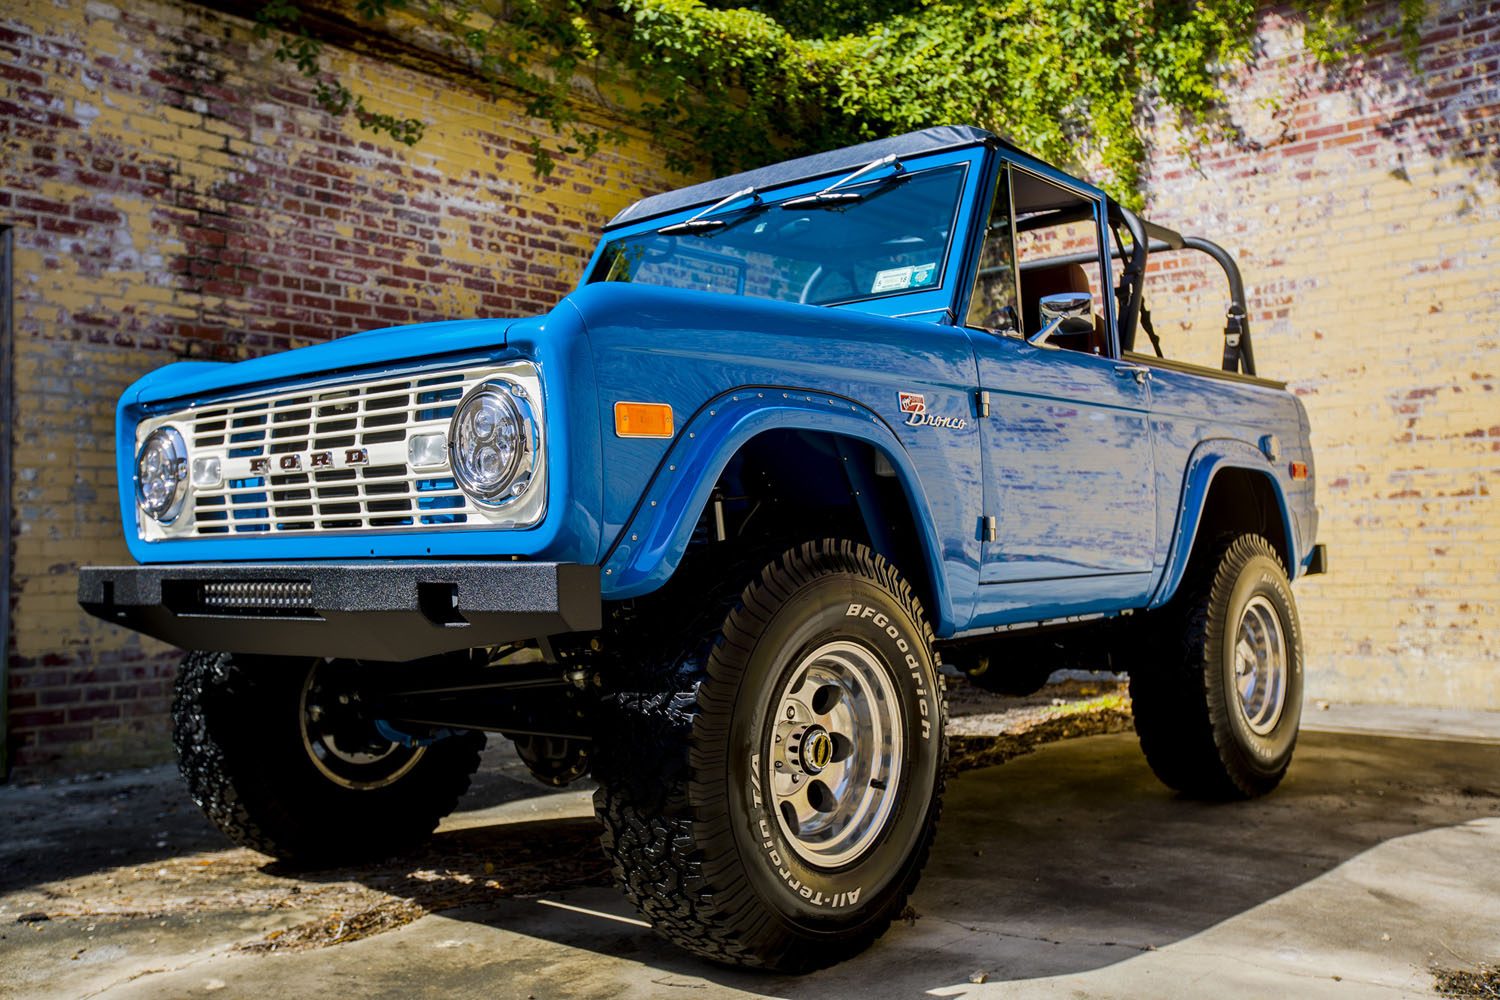 There's A New Bronco Coming, But What About A Restored